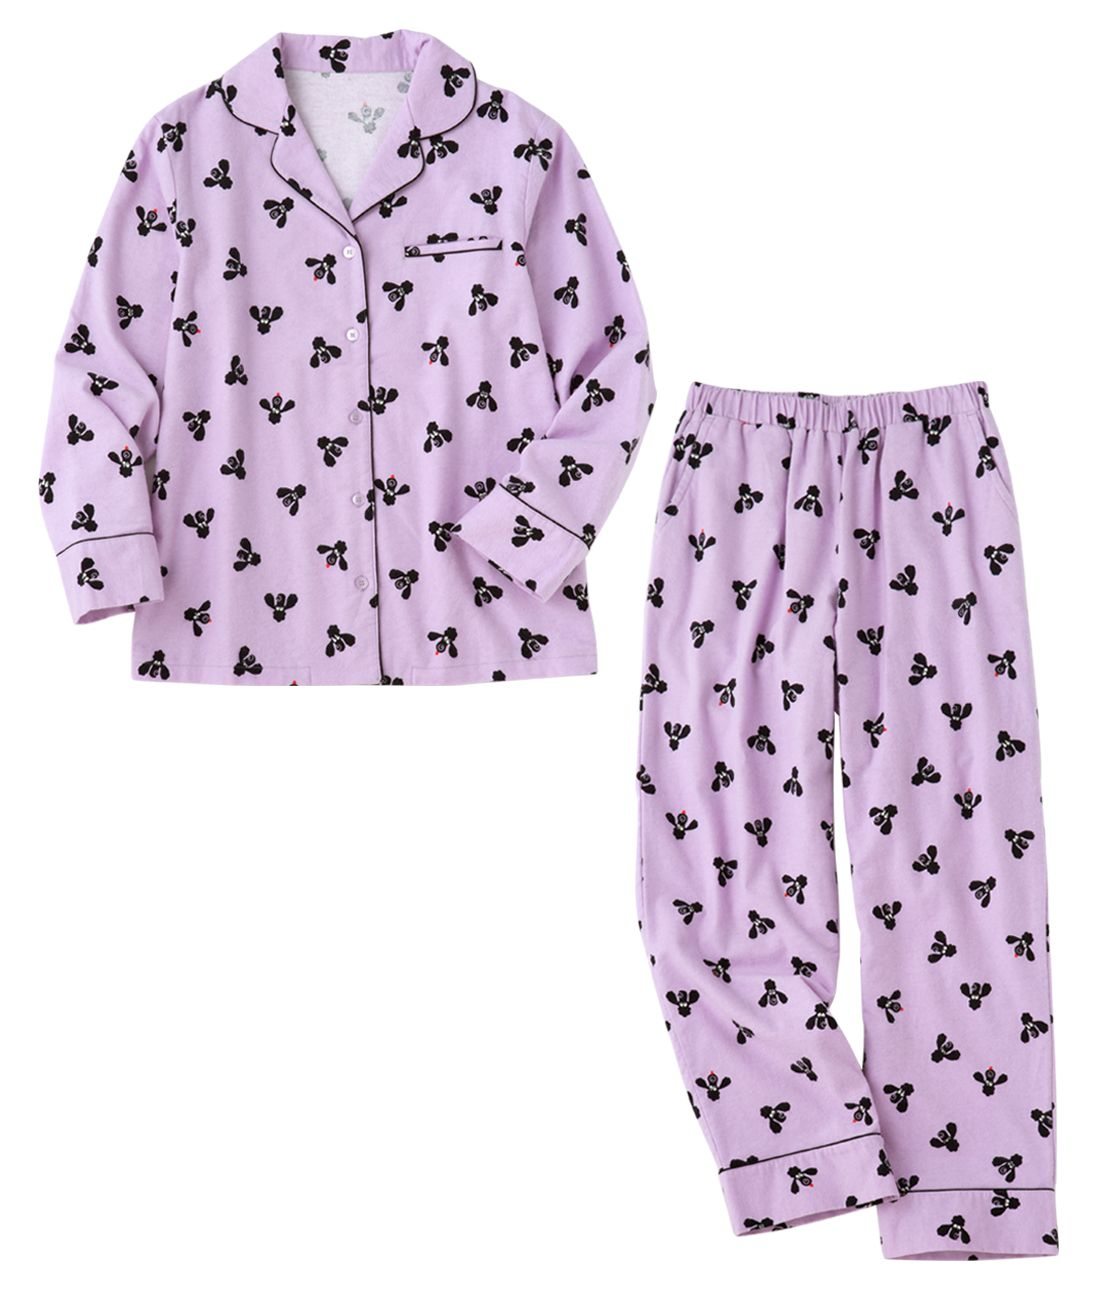 YM flannel print shirt pajamas